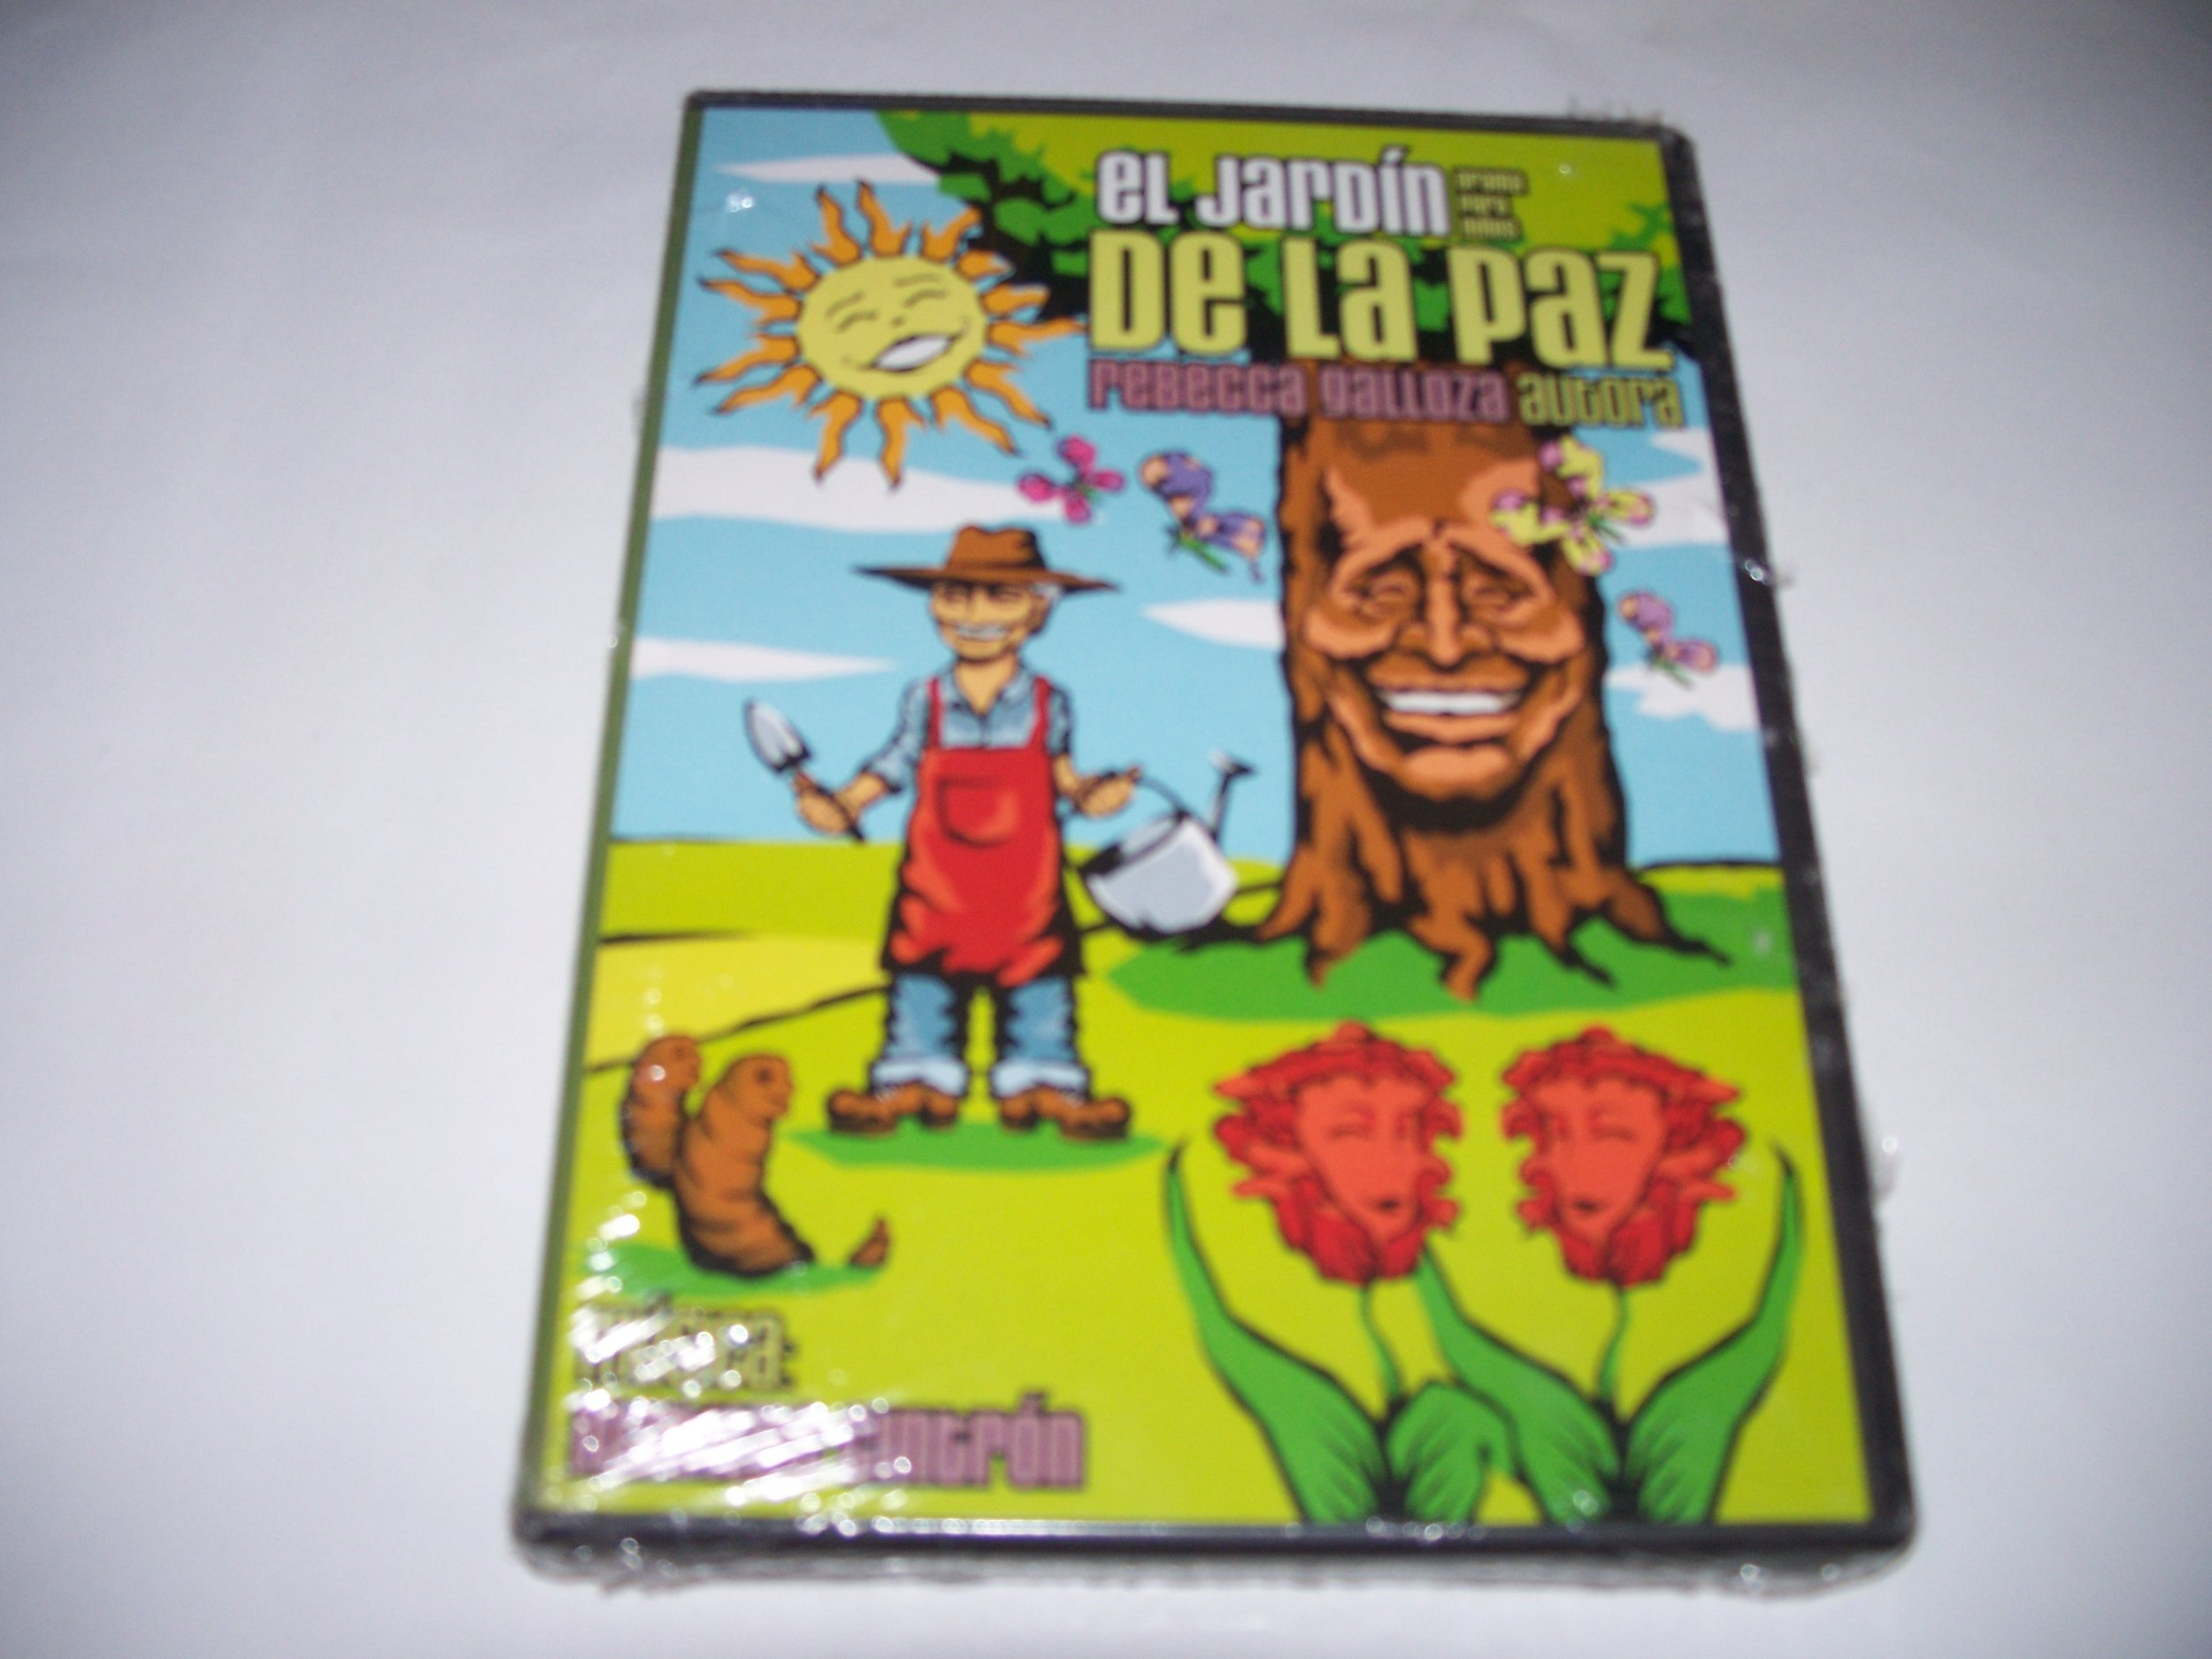 El Jardin De La Paz: Rebecca Galloza: Amazon.com: Books